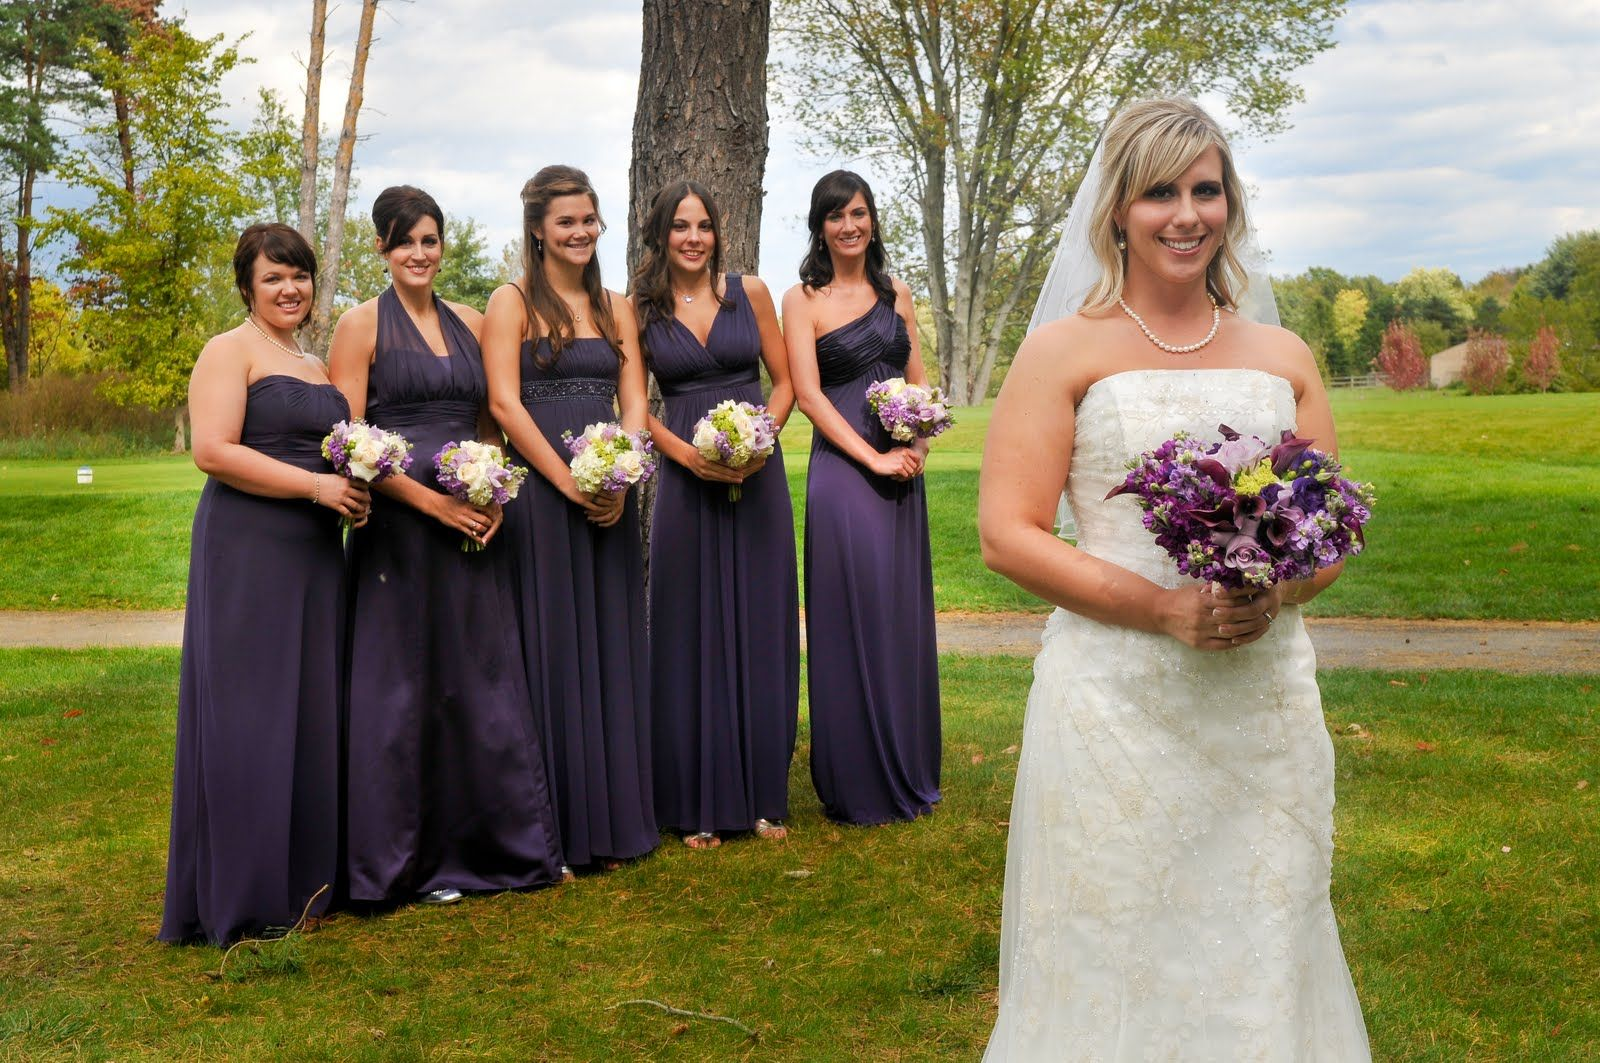 Love bridesmaids dresses but in navy blue or deep turquoise love bridesmaids dresses but in navy blue or deep turquoise teal davids bridal ombrellifo Image collections